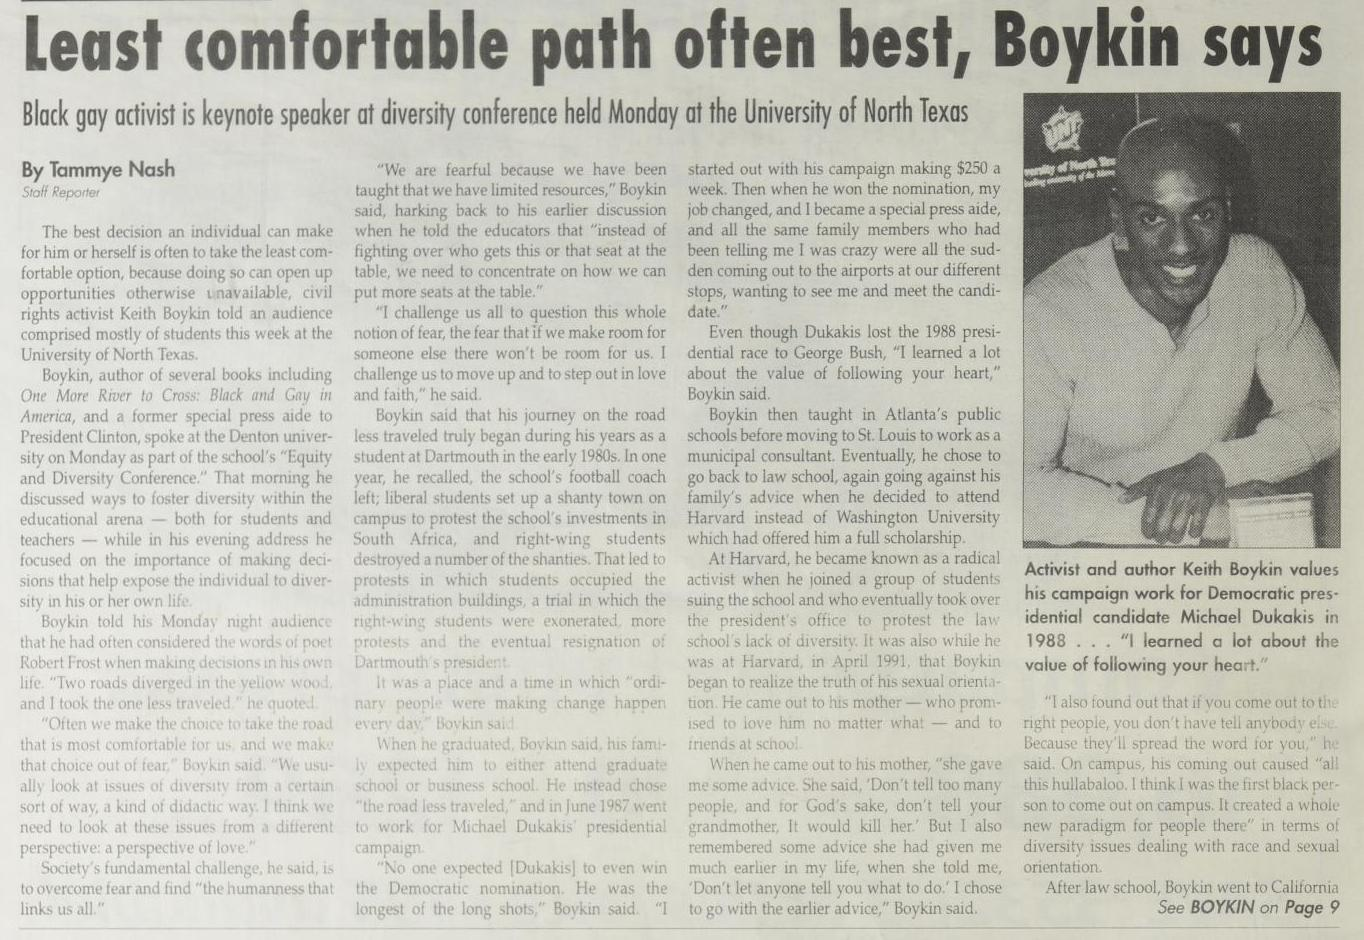 News article followed by four columns of text. The furthest column on the right consists mostly of a photo of an African American man.